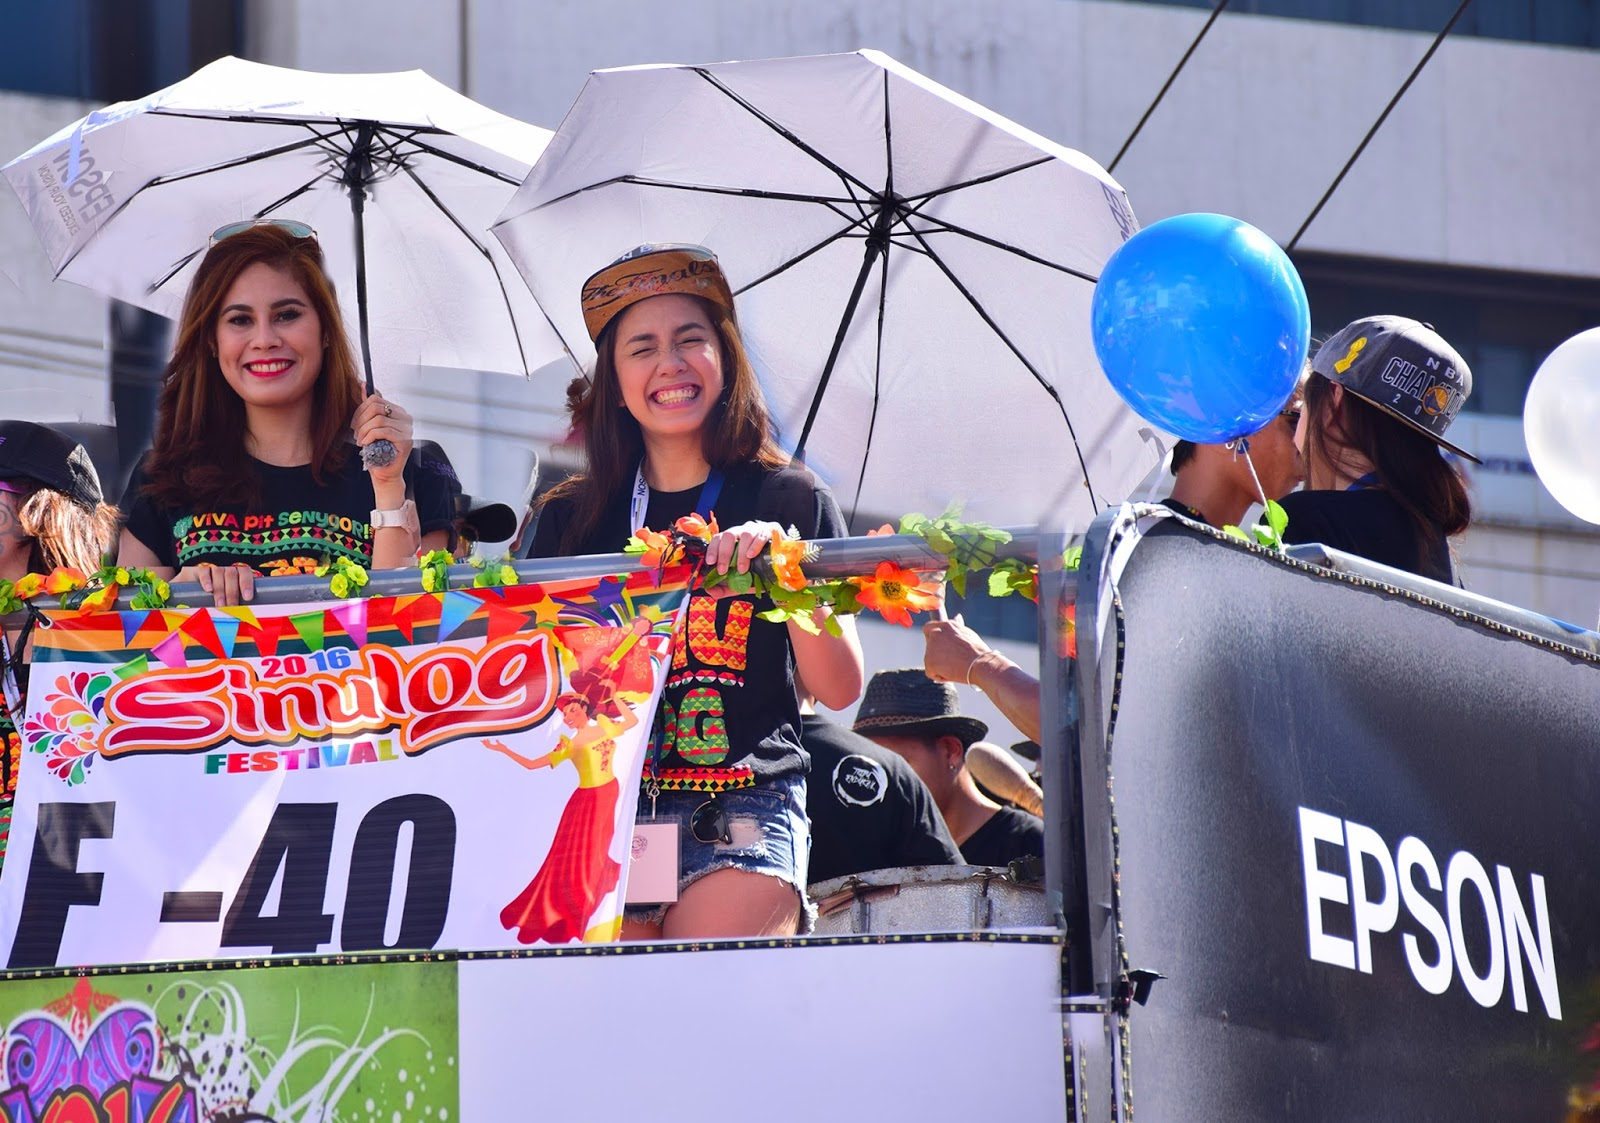 Epson Philippines Strengthens Commitment in Cebu through Sinulog